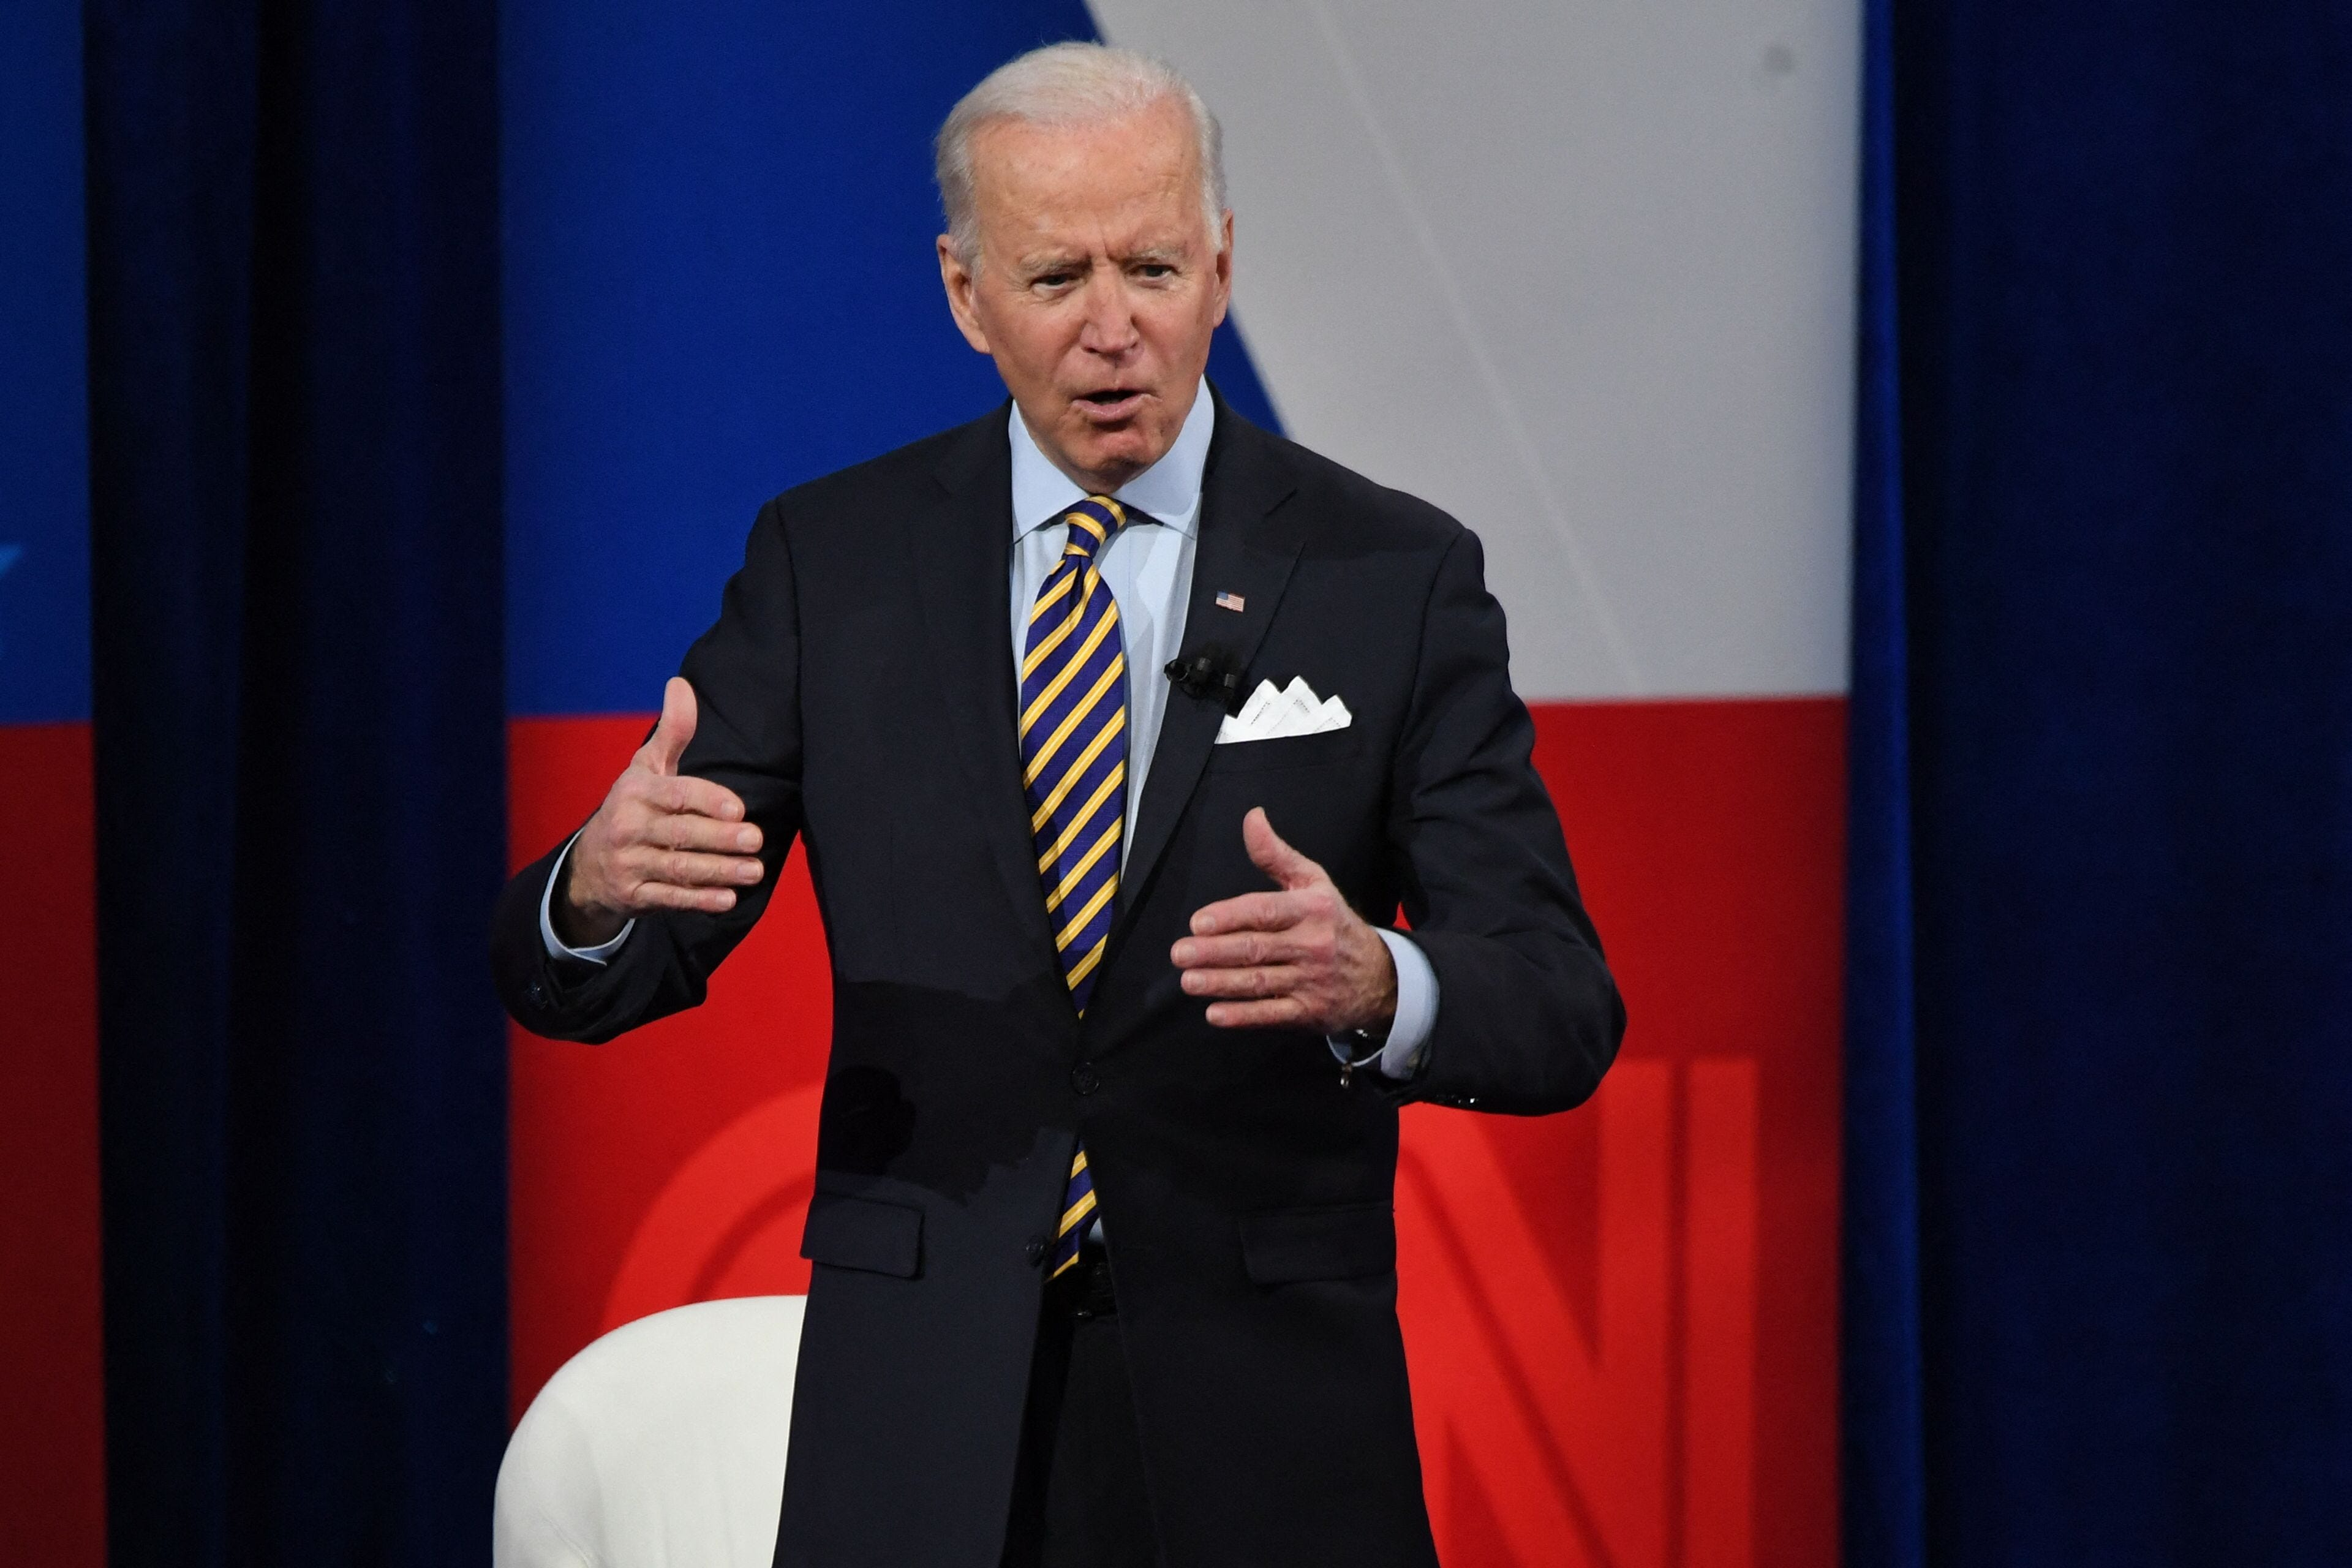 Now is the time we should be spending : Biden pitches $1.9 trillion COVID relief